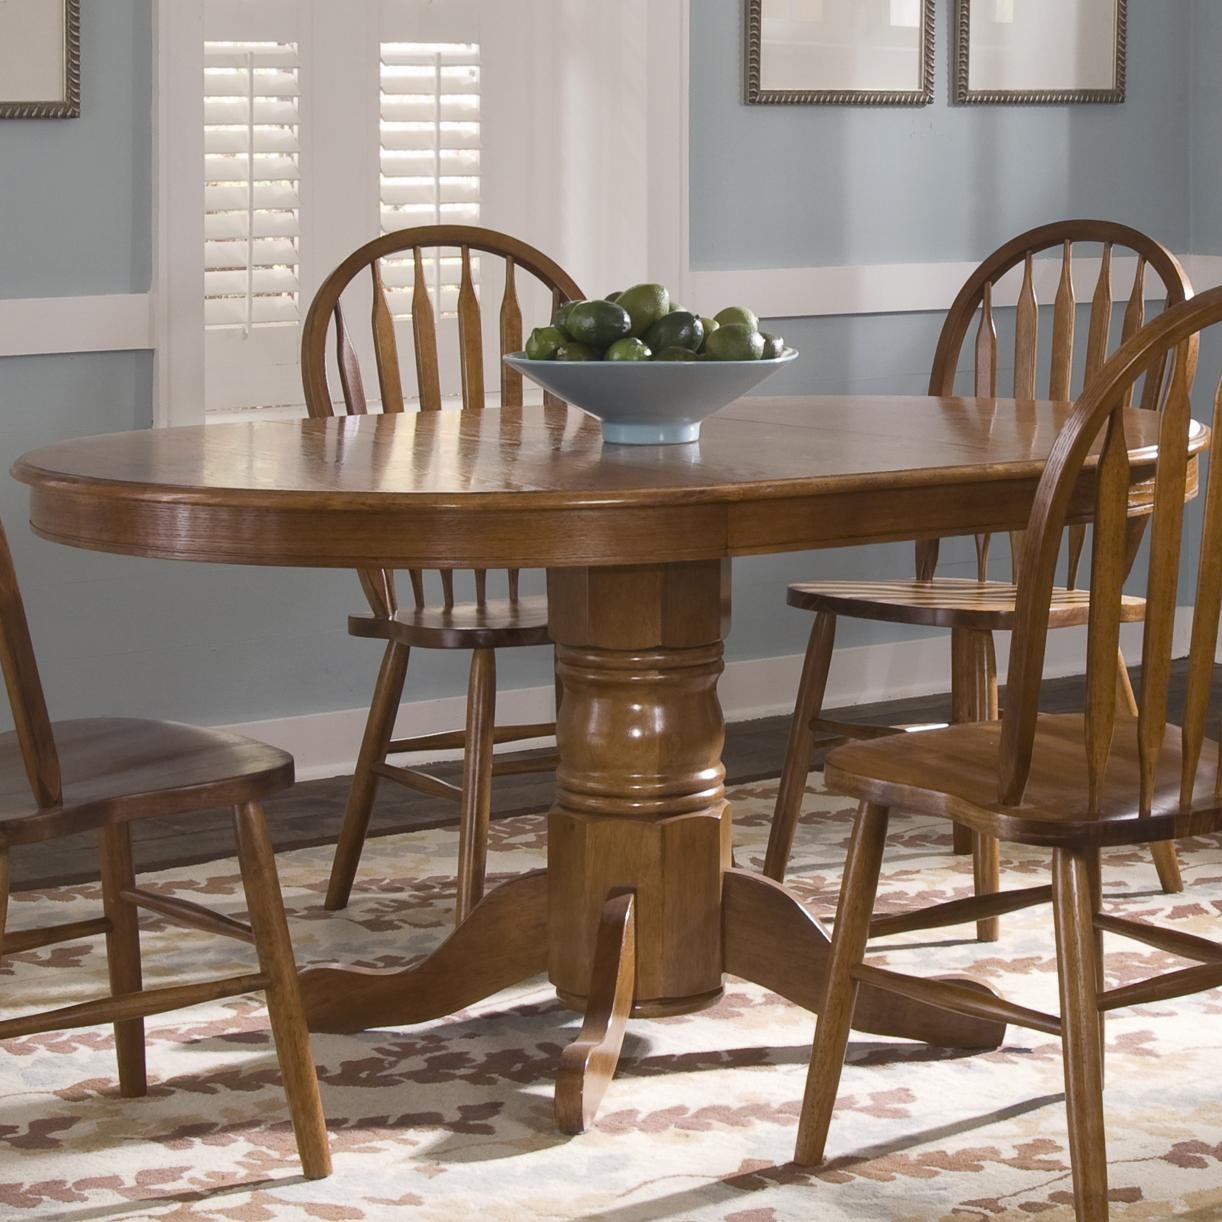 pedestal table and chairs mesh desk chair liberty furniture nostalgia oval dinner